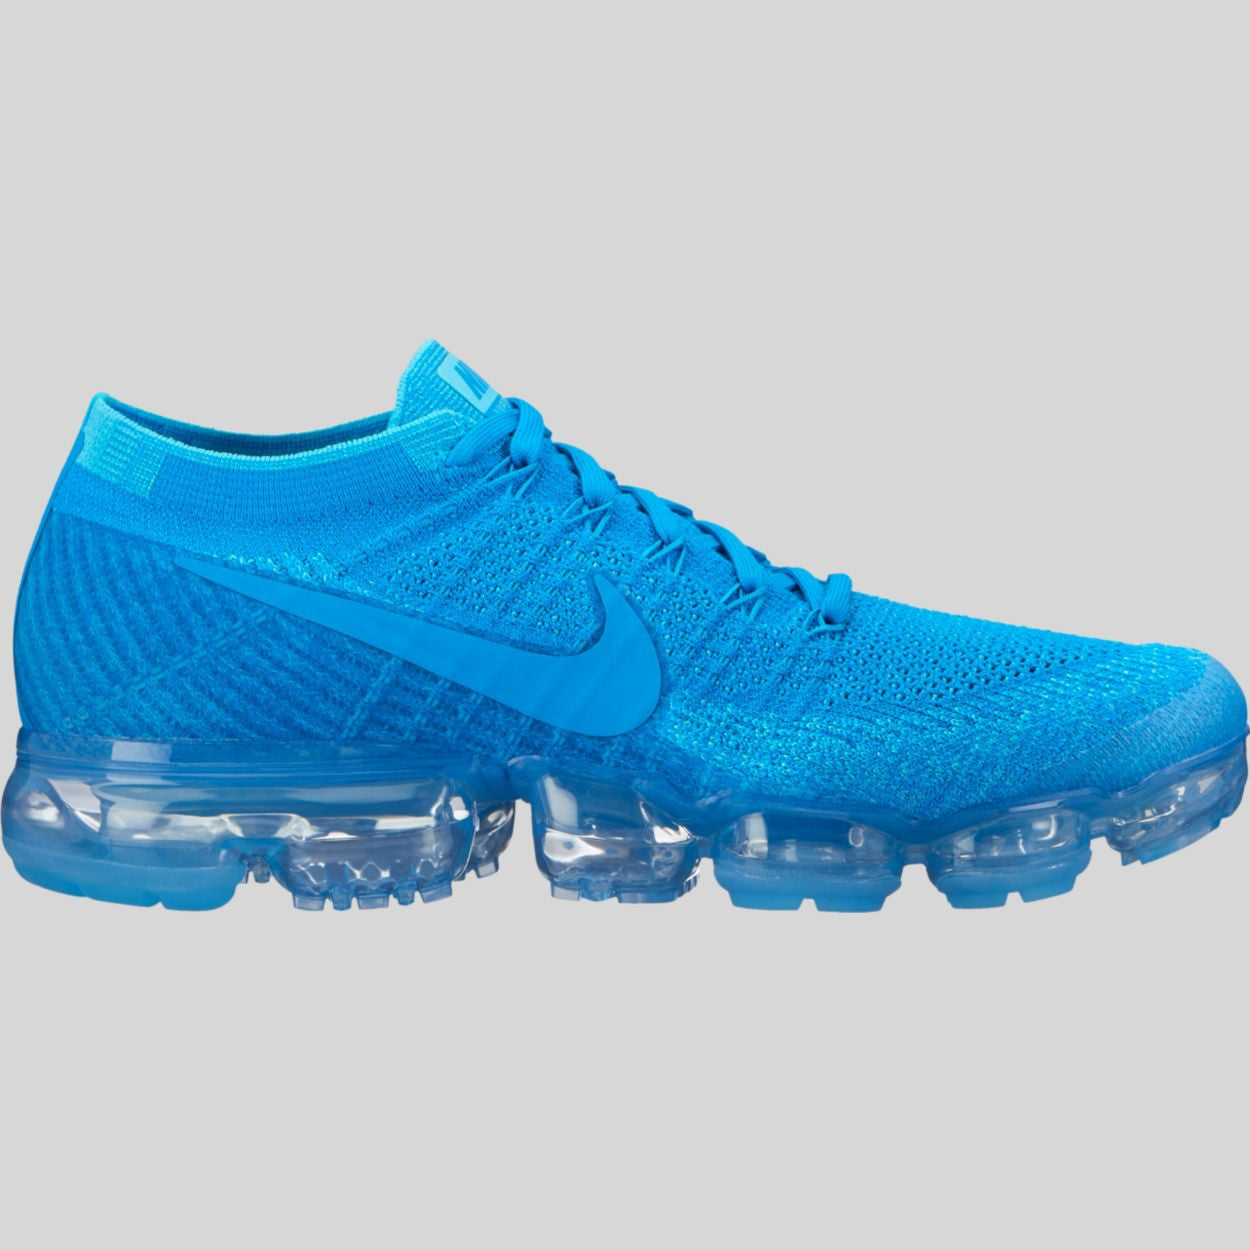 2dbc996f753fb Nike Air Vapormax Flyknit Blue Orbit Glacier Blue (849558-402)